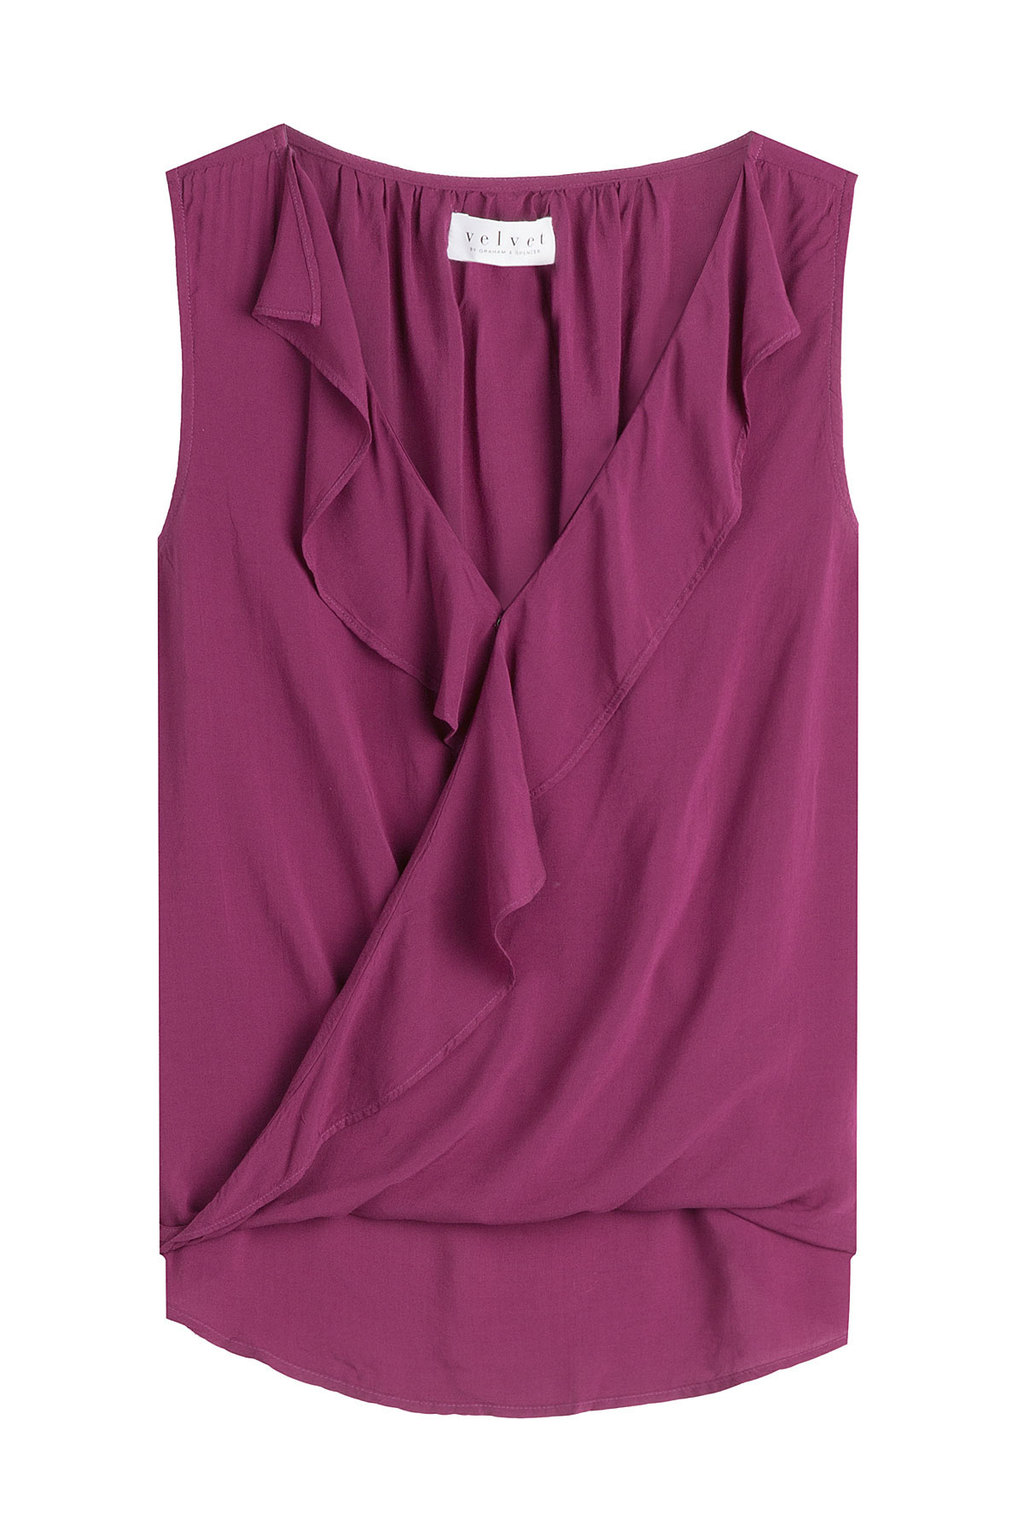 Sleeveless Top With Ruffles Purple - neckline: v-neck; pattern: plain; sleeve style: sleeveless; style: wrap/faux wrap; predominant colour: magenta; occasions: casual; length: standard; fibres: viscose/rayon - 100%; fit: body skimming; sleeve length: sleeveless; bust detail: tiers/frills/bulky drapes/pleats; pattern type: fabric; texture group: jersey - stretchy/drapey; season: a/w 2016